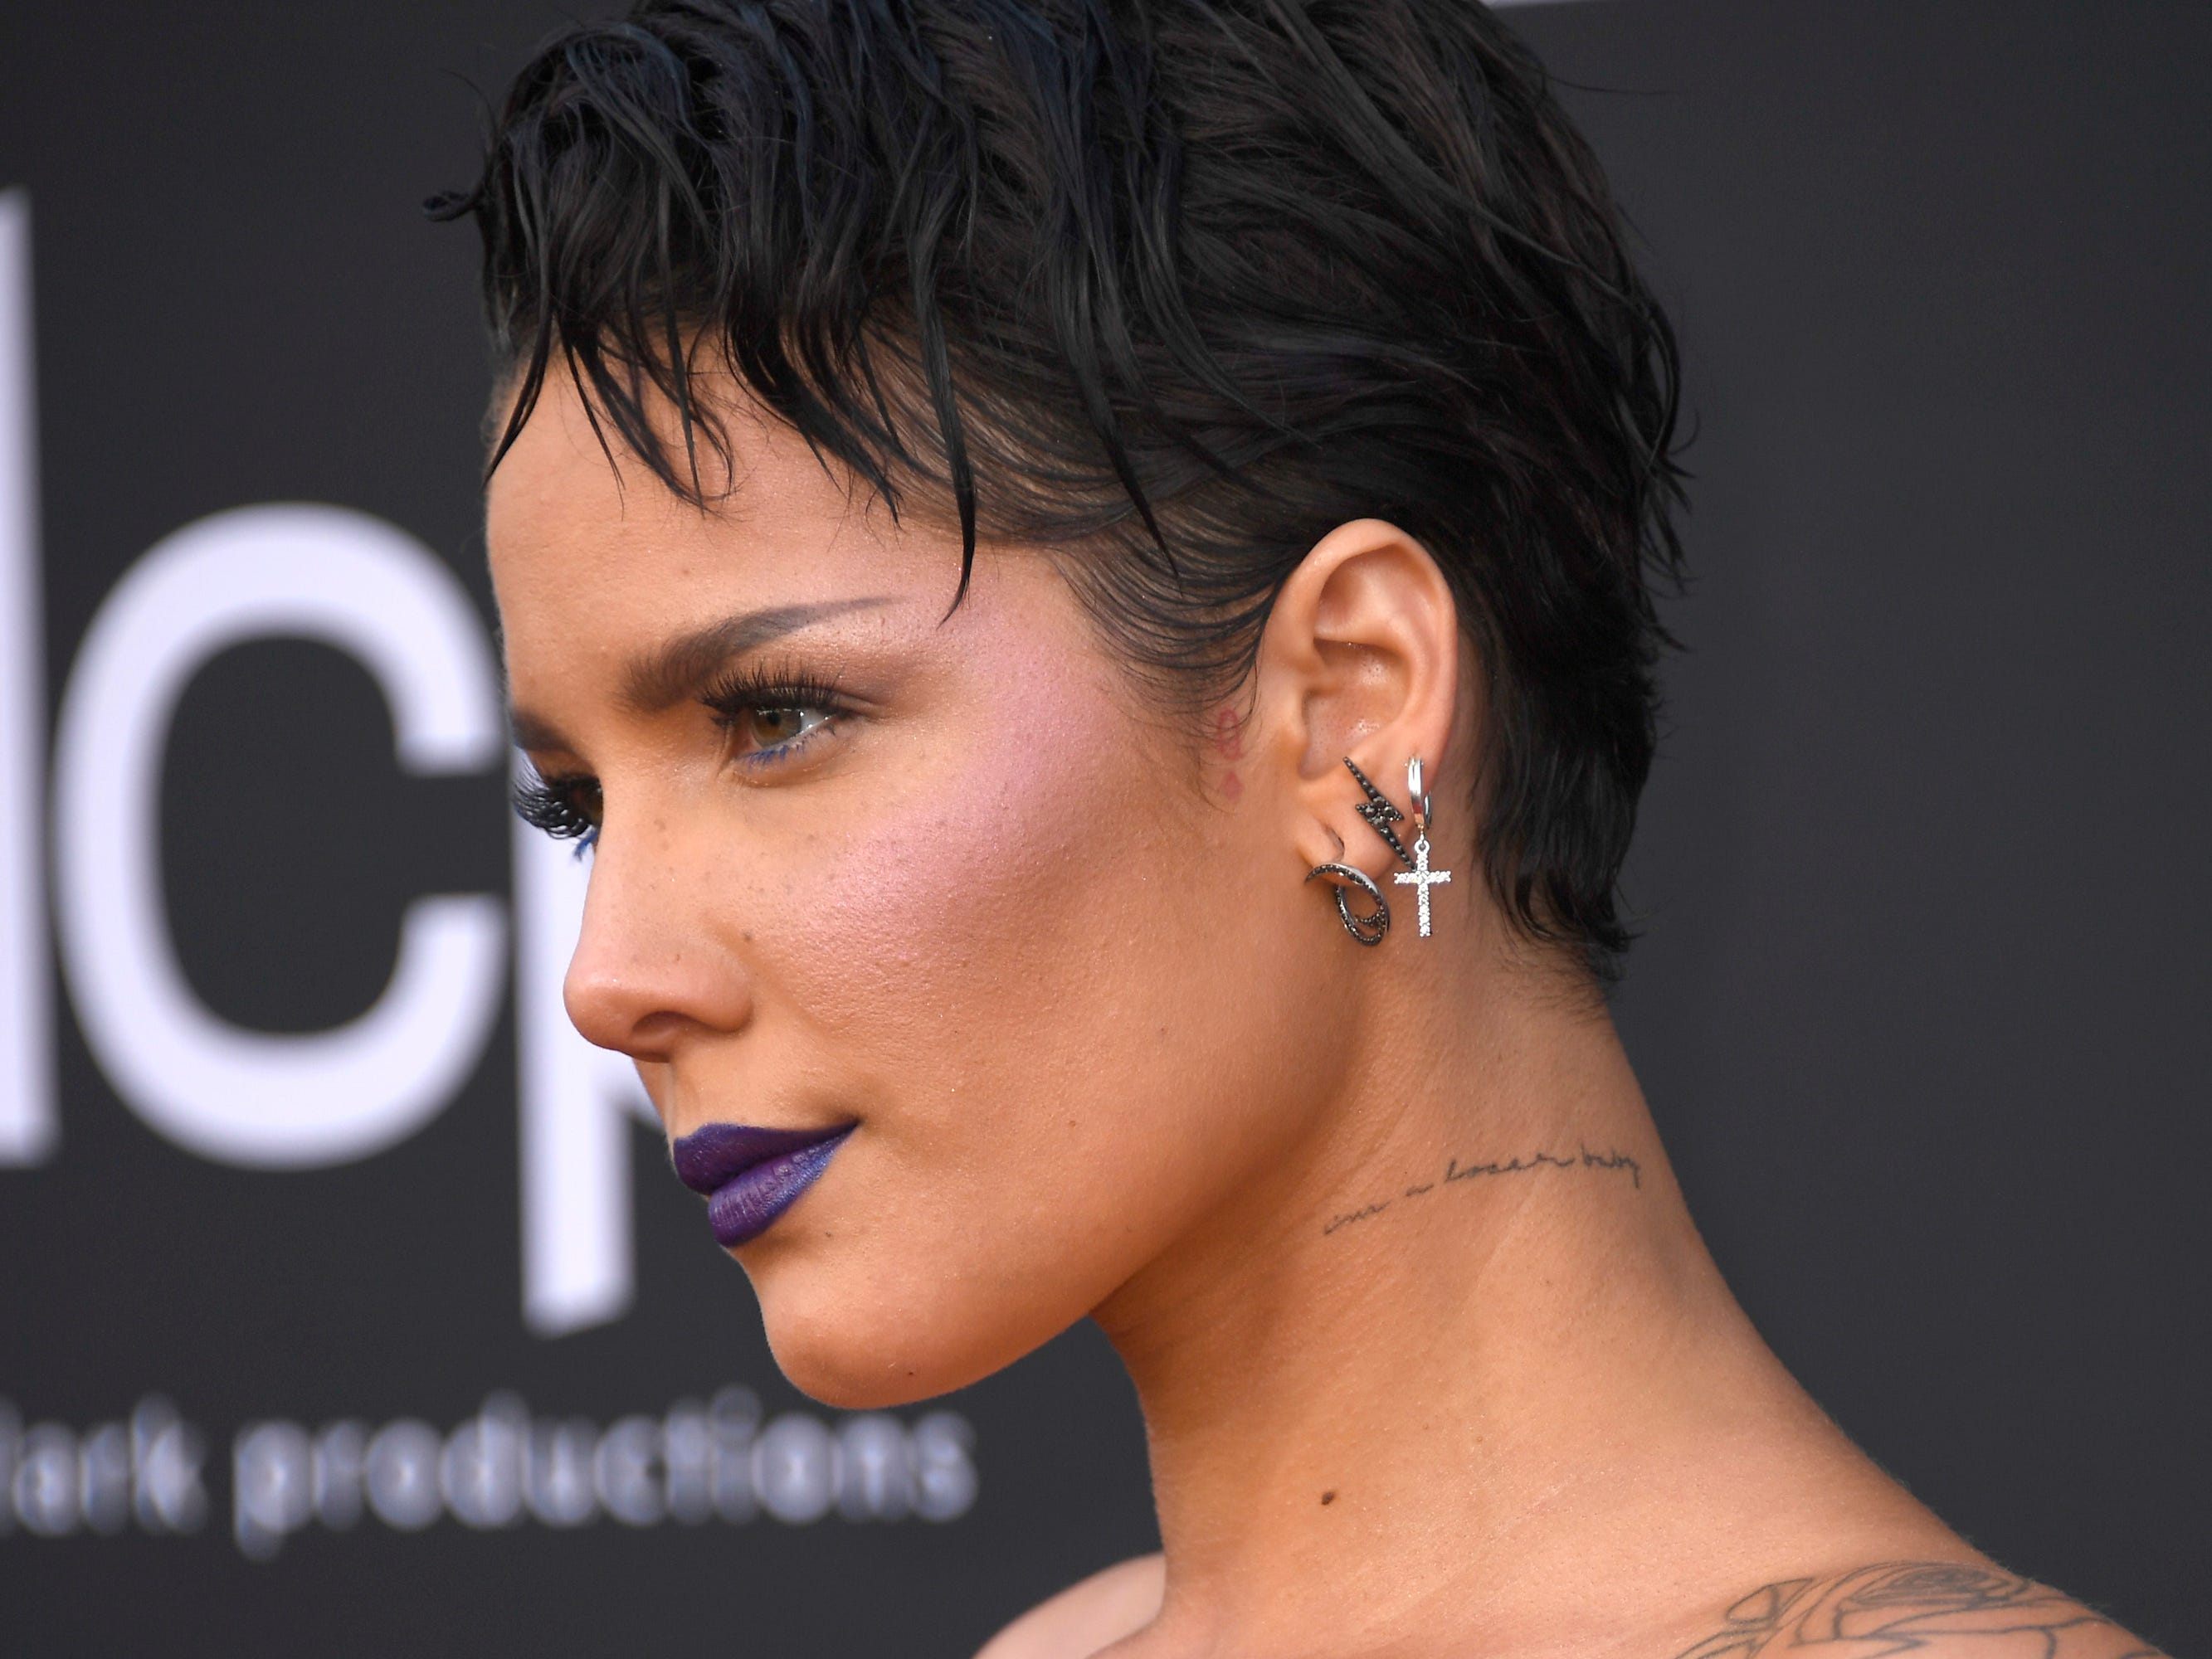 Halsey attends the 2019 Billboard Music Awards at MGM Grand Garden Arena on May 01, 2019 in Las Vegas, Nevada.